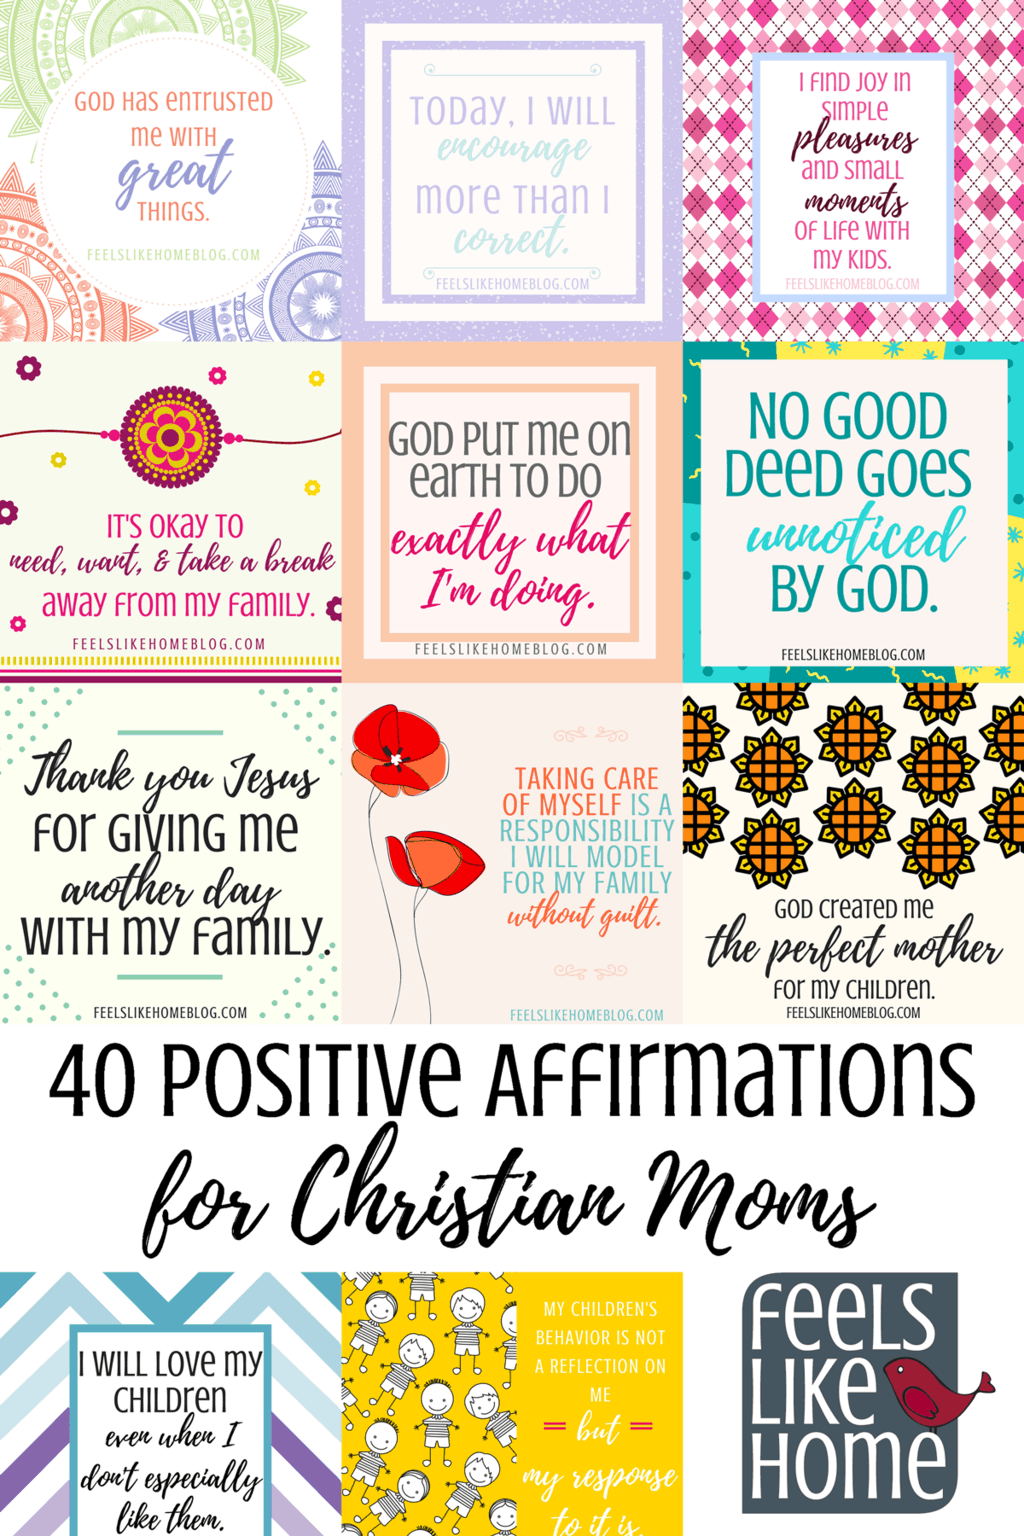 40 Positive Affirmations For Christian Moms With